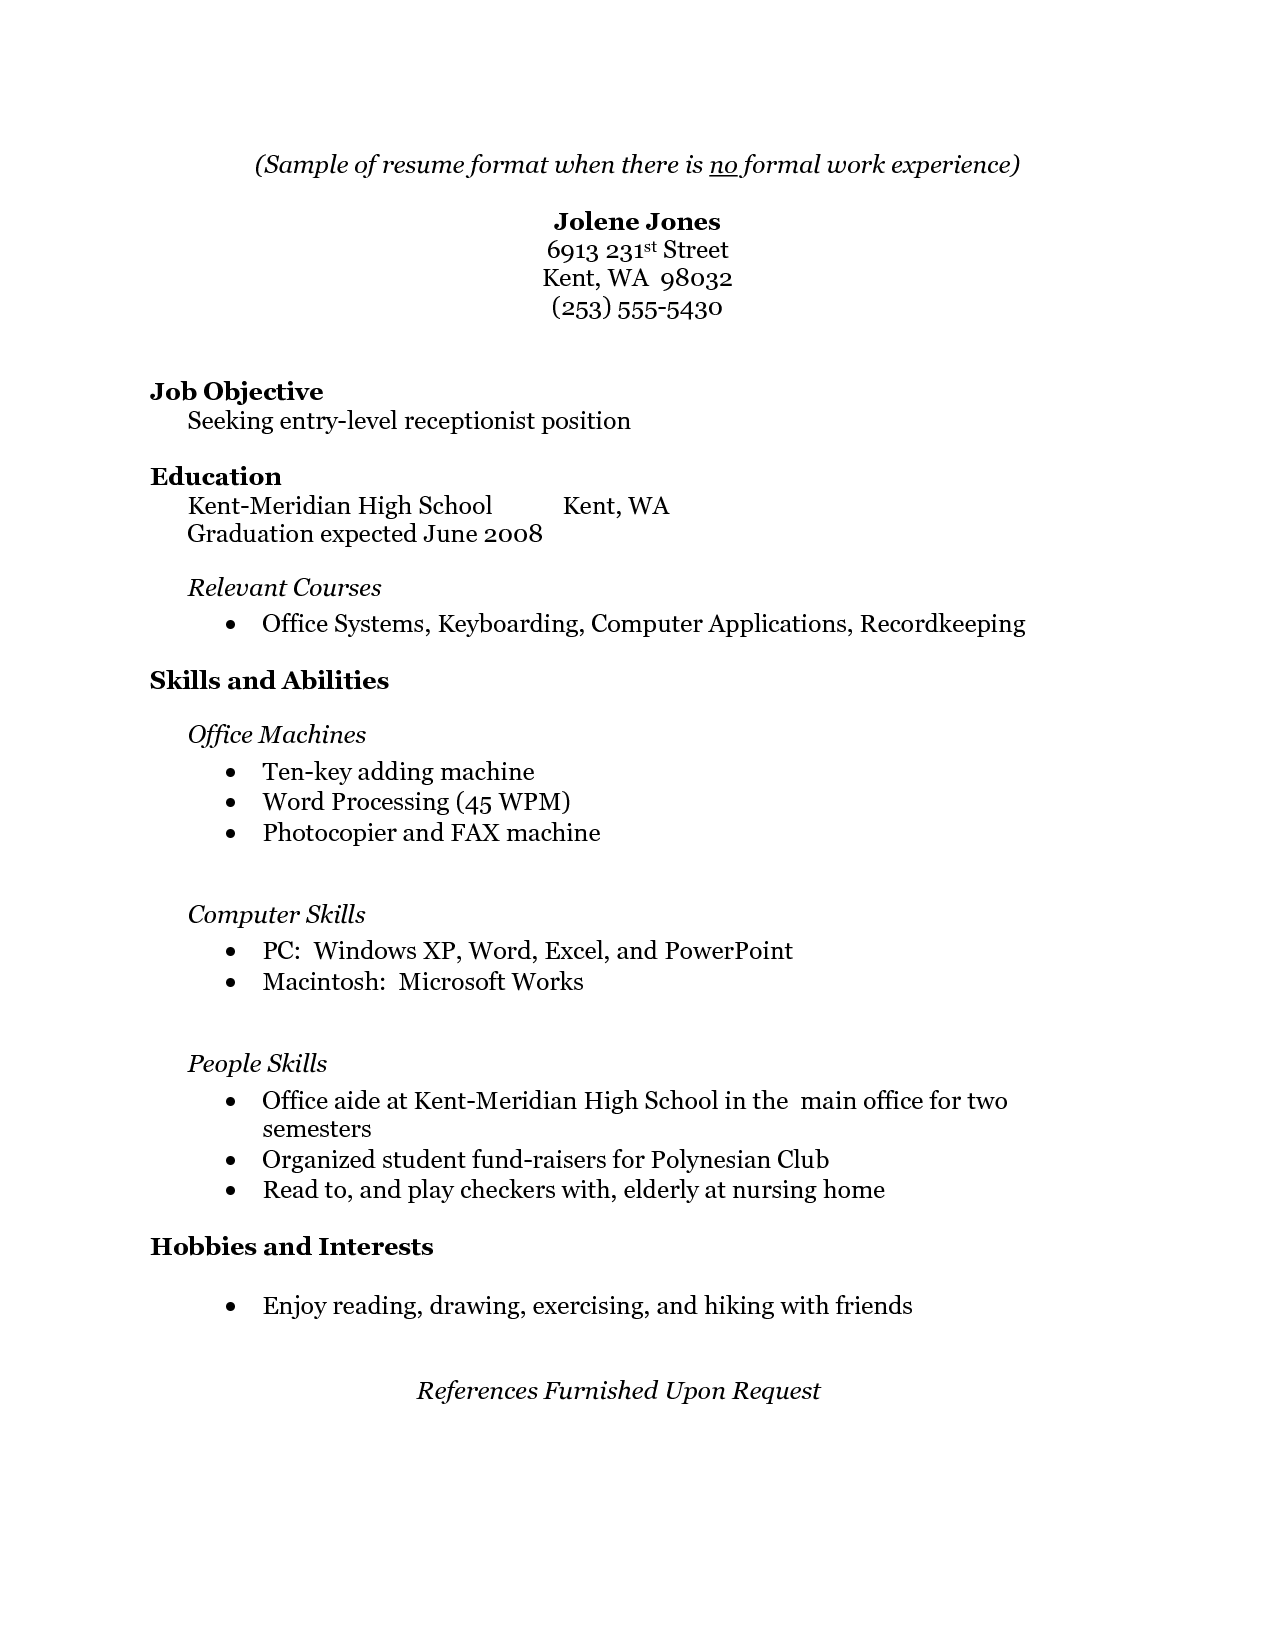 resume examples with no job experience | 1-resume examples